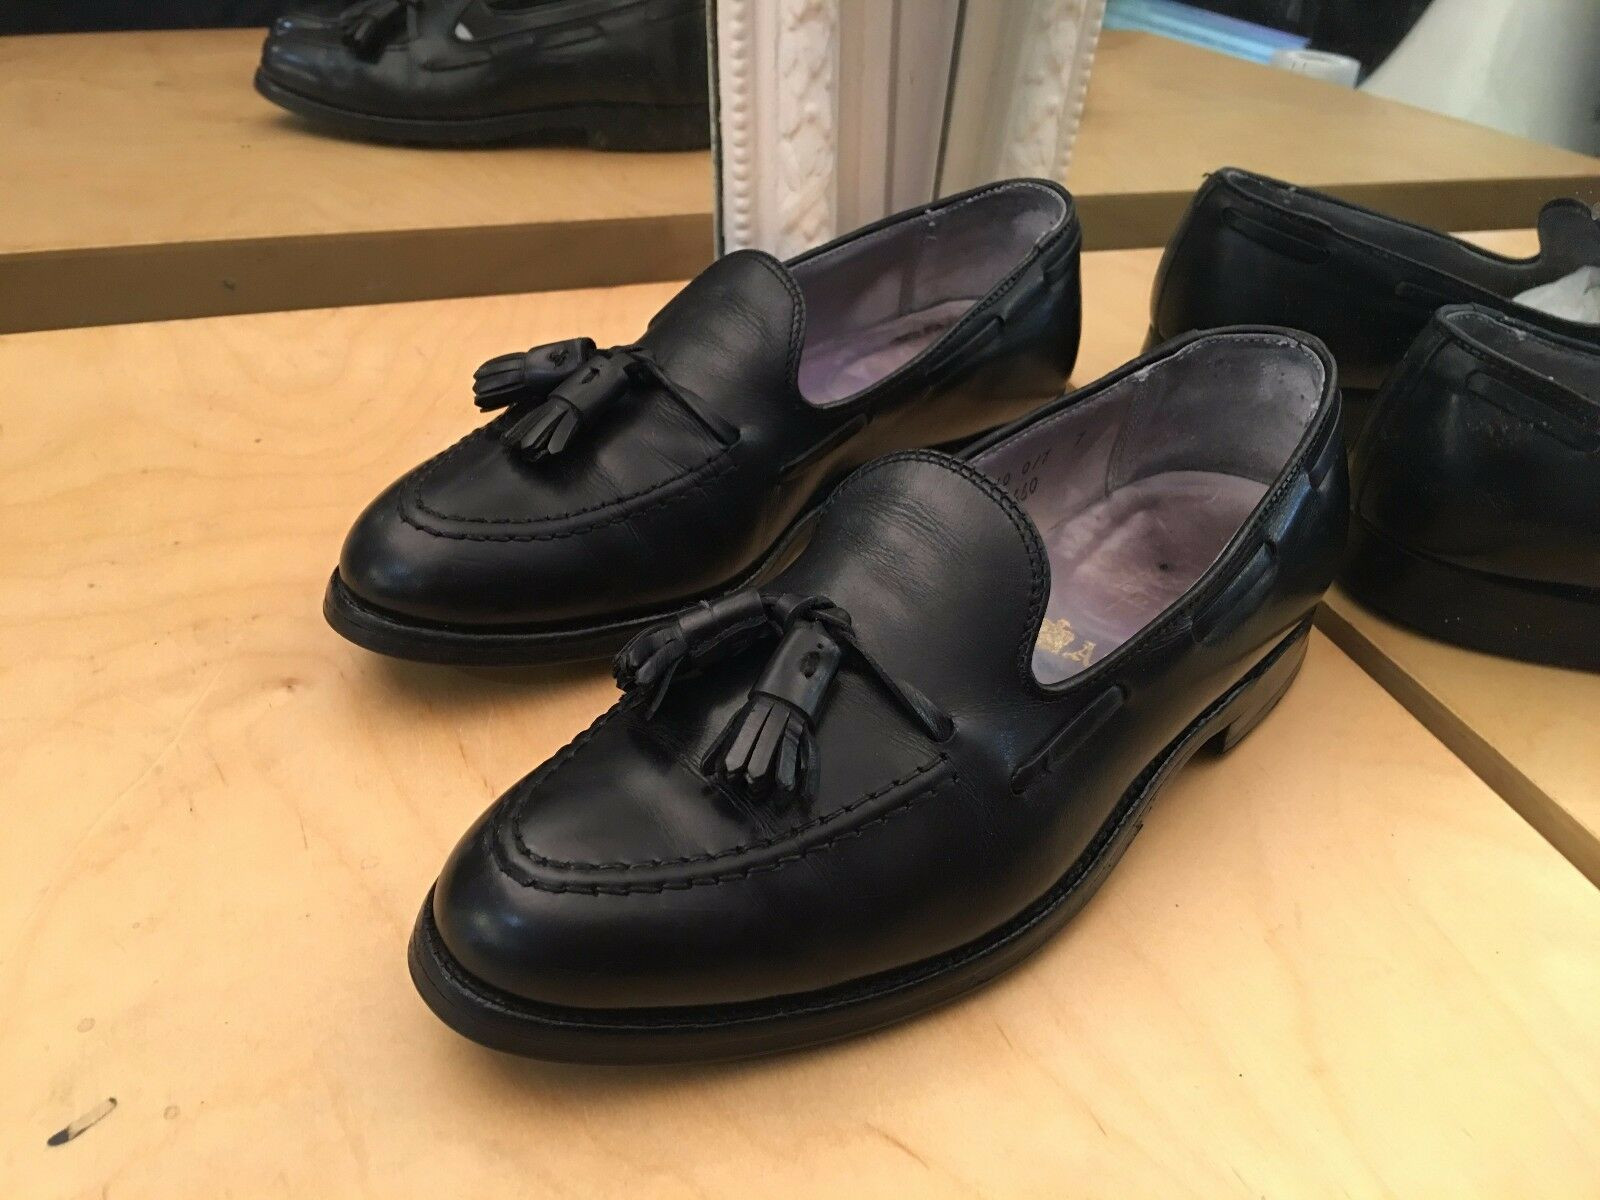 Rare Alden  Shoes Shoes Shoes Loafers Mocassins Size 6.5 B/D ( EU 40 ) Made in U.S.A 4cfbf7